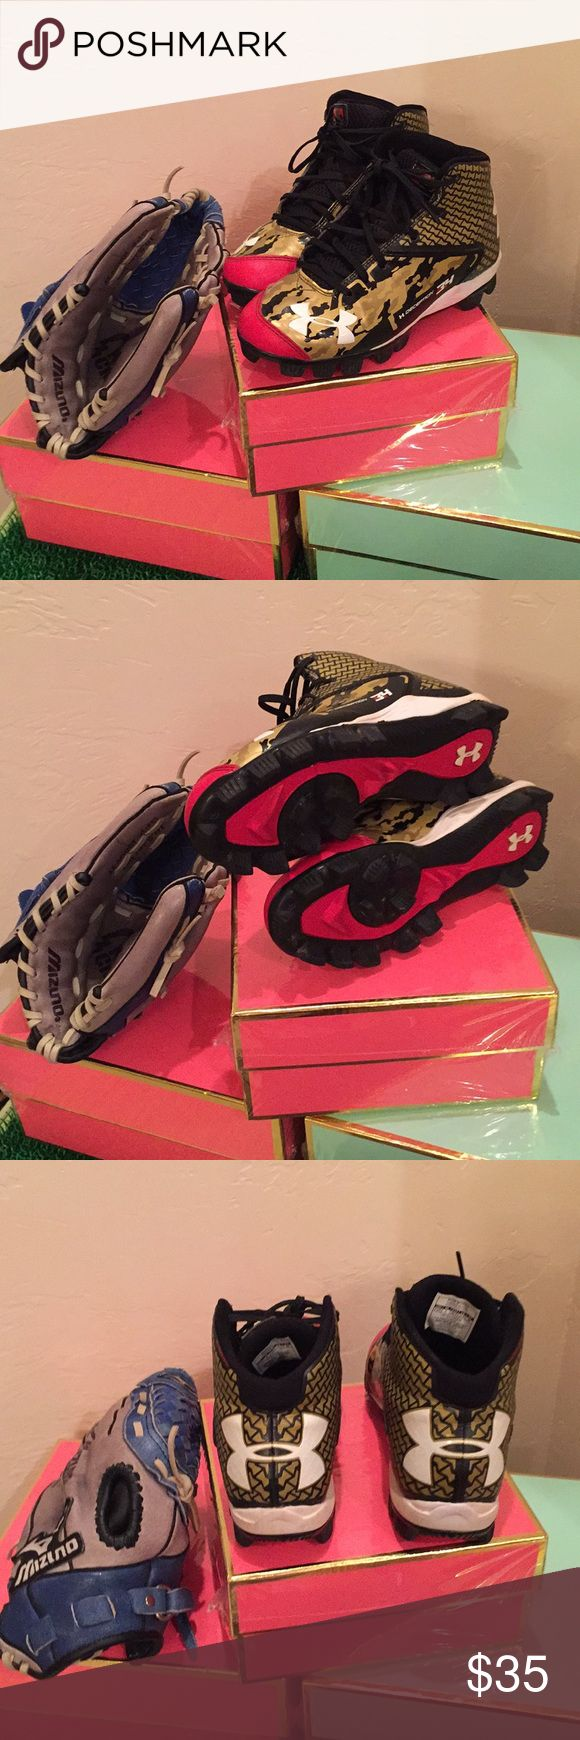 Youth Baseball Cleats and Glove Set My Grandson Watches Grandma Posh so he created a bundle of Under Armour Baseball Cleats 3.5Youth and a Mizuno Right Hand Glove.......play Ball Under Armour Shoes Sneakers